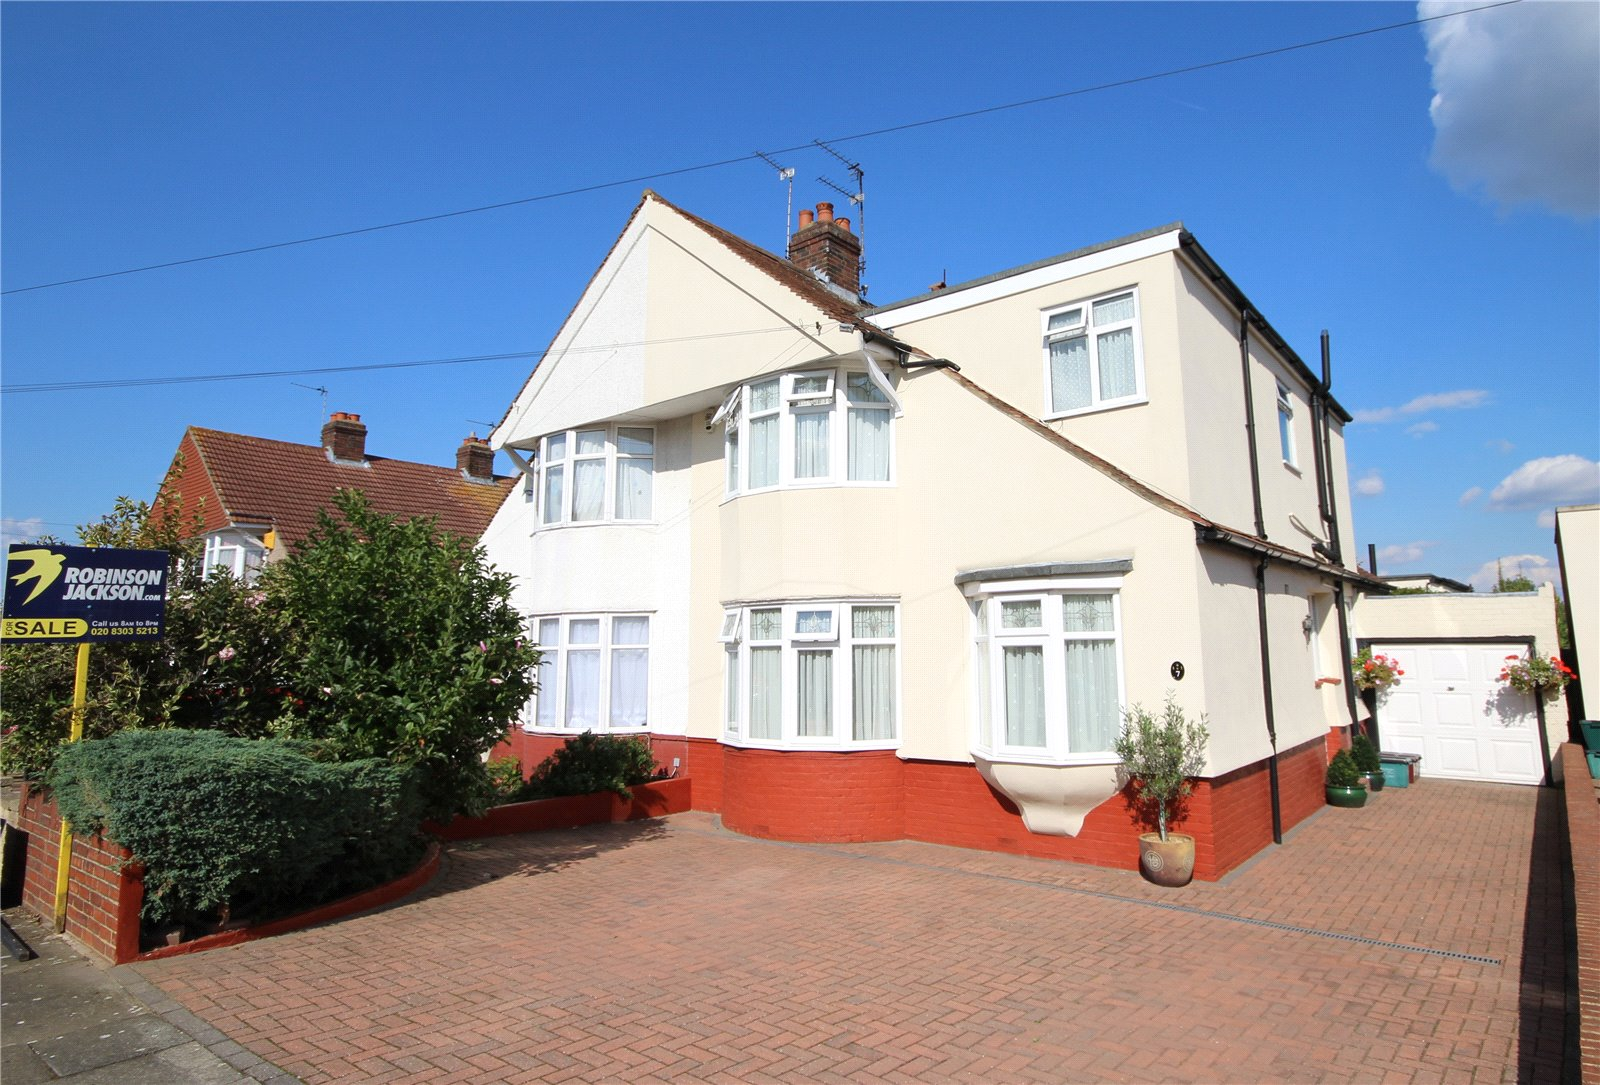 Belmont Avenue, South Welling, Kent, DA16